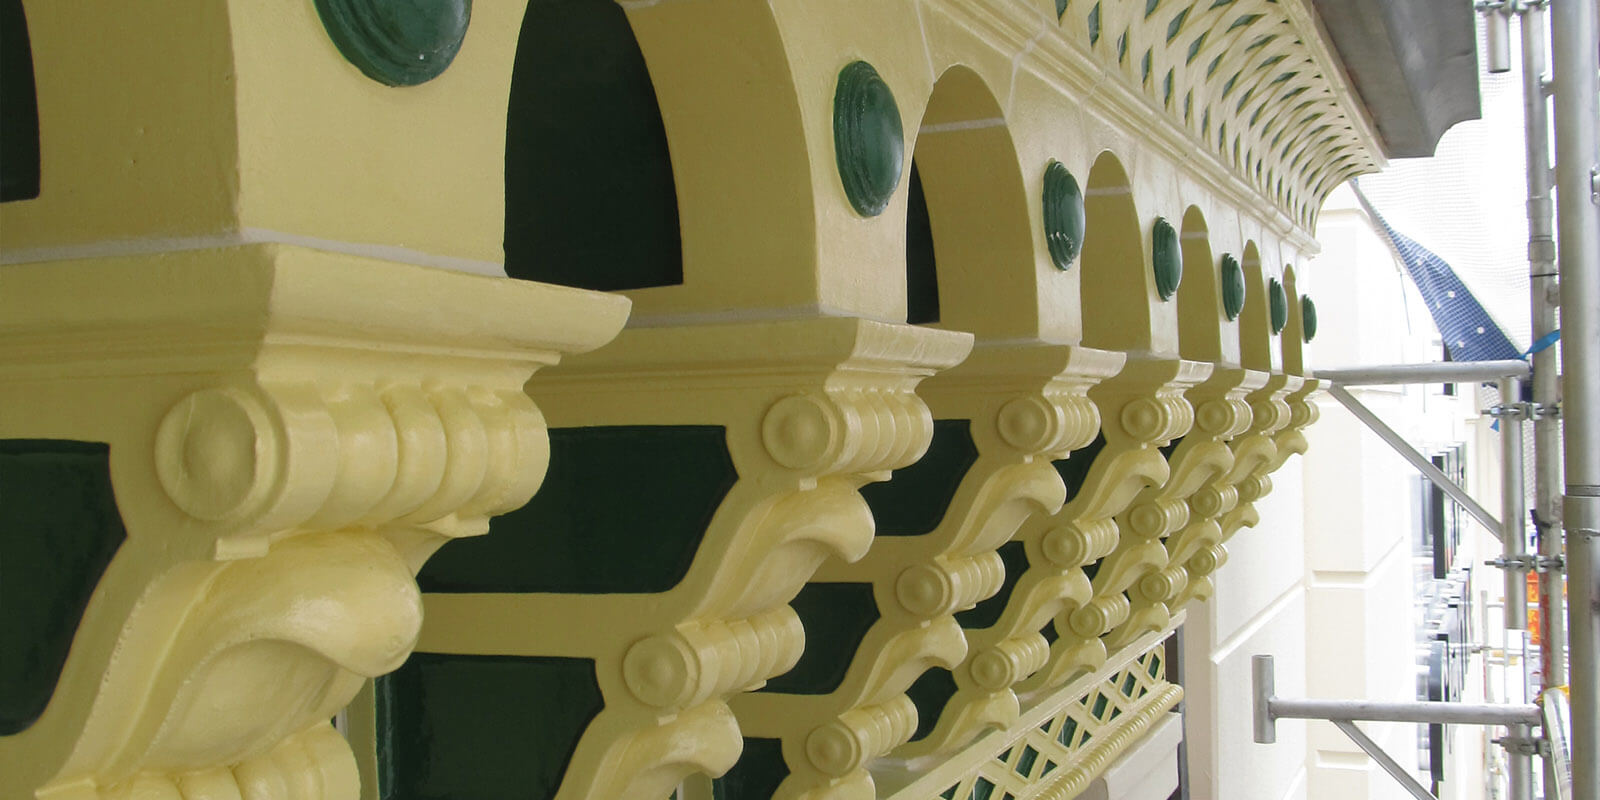 Arch Restoration At Myer Centre - Structural Building Repairs - Remedial Building Services